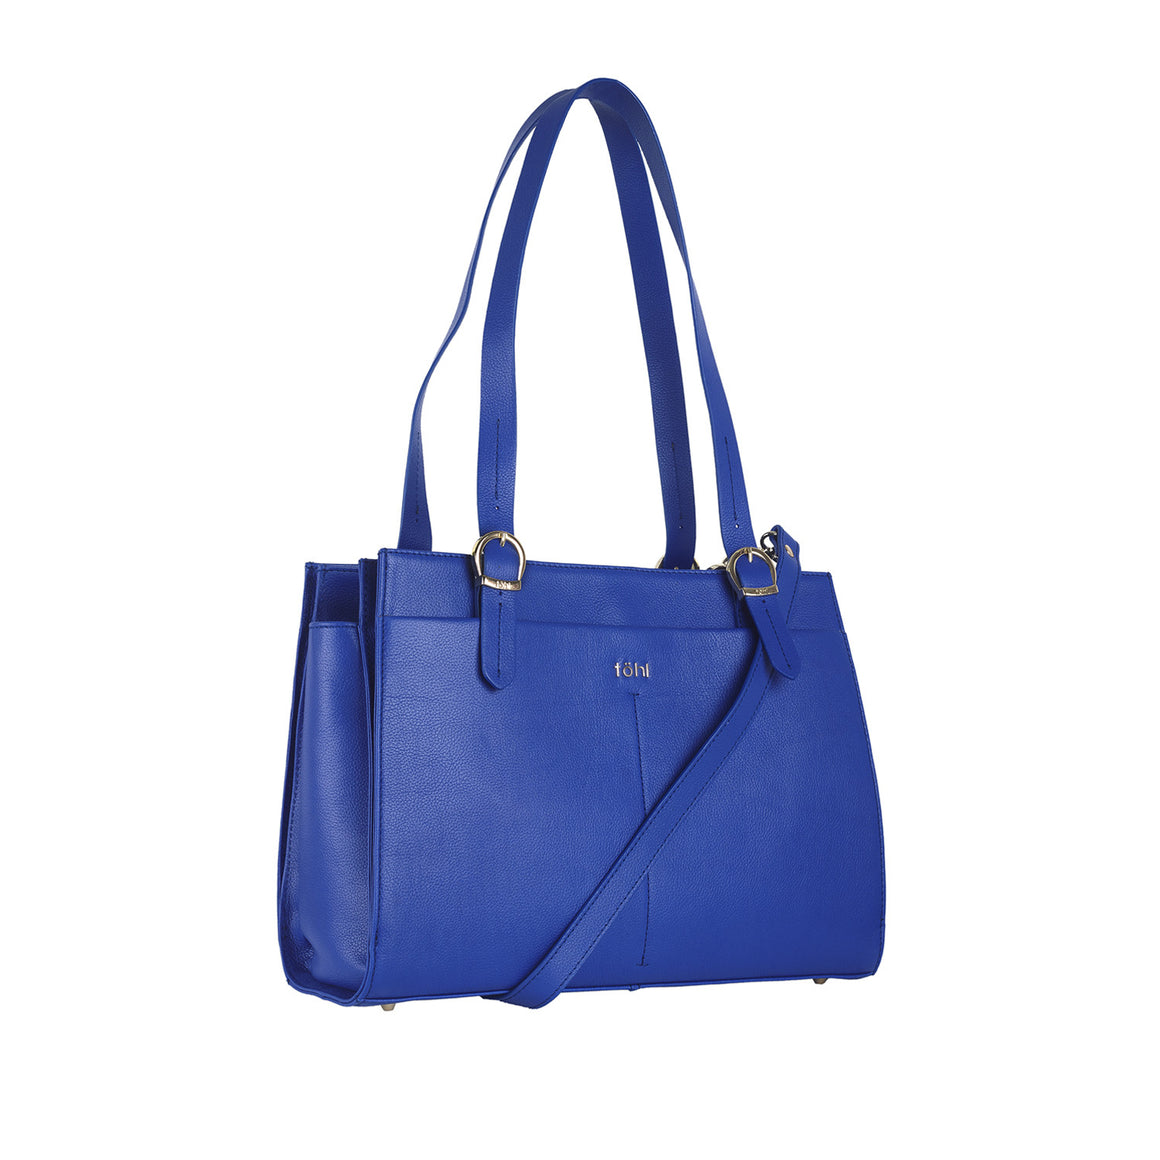 SB 0018 - TOHL TRINITY WOMEN'S DAY BAG - COBALT BLUE - FRONT VIEW